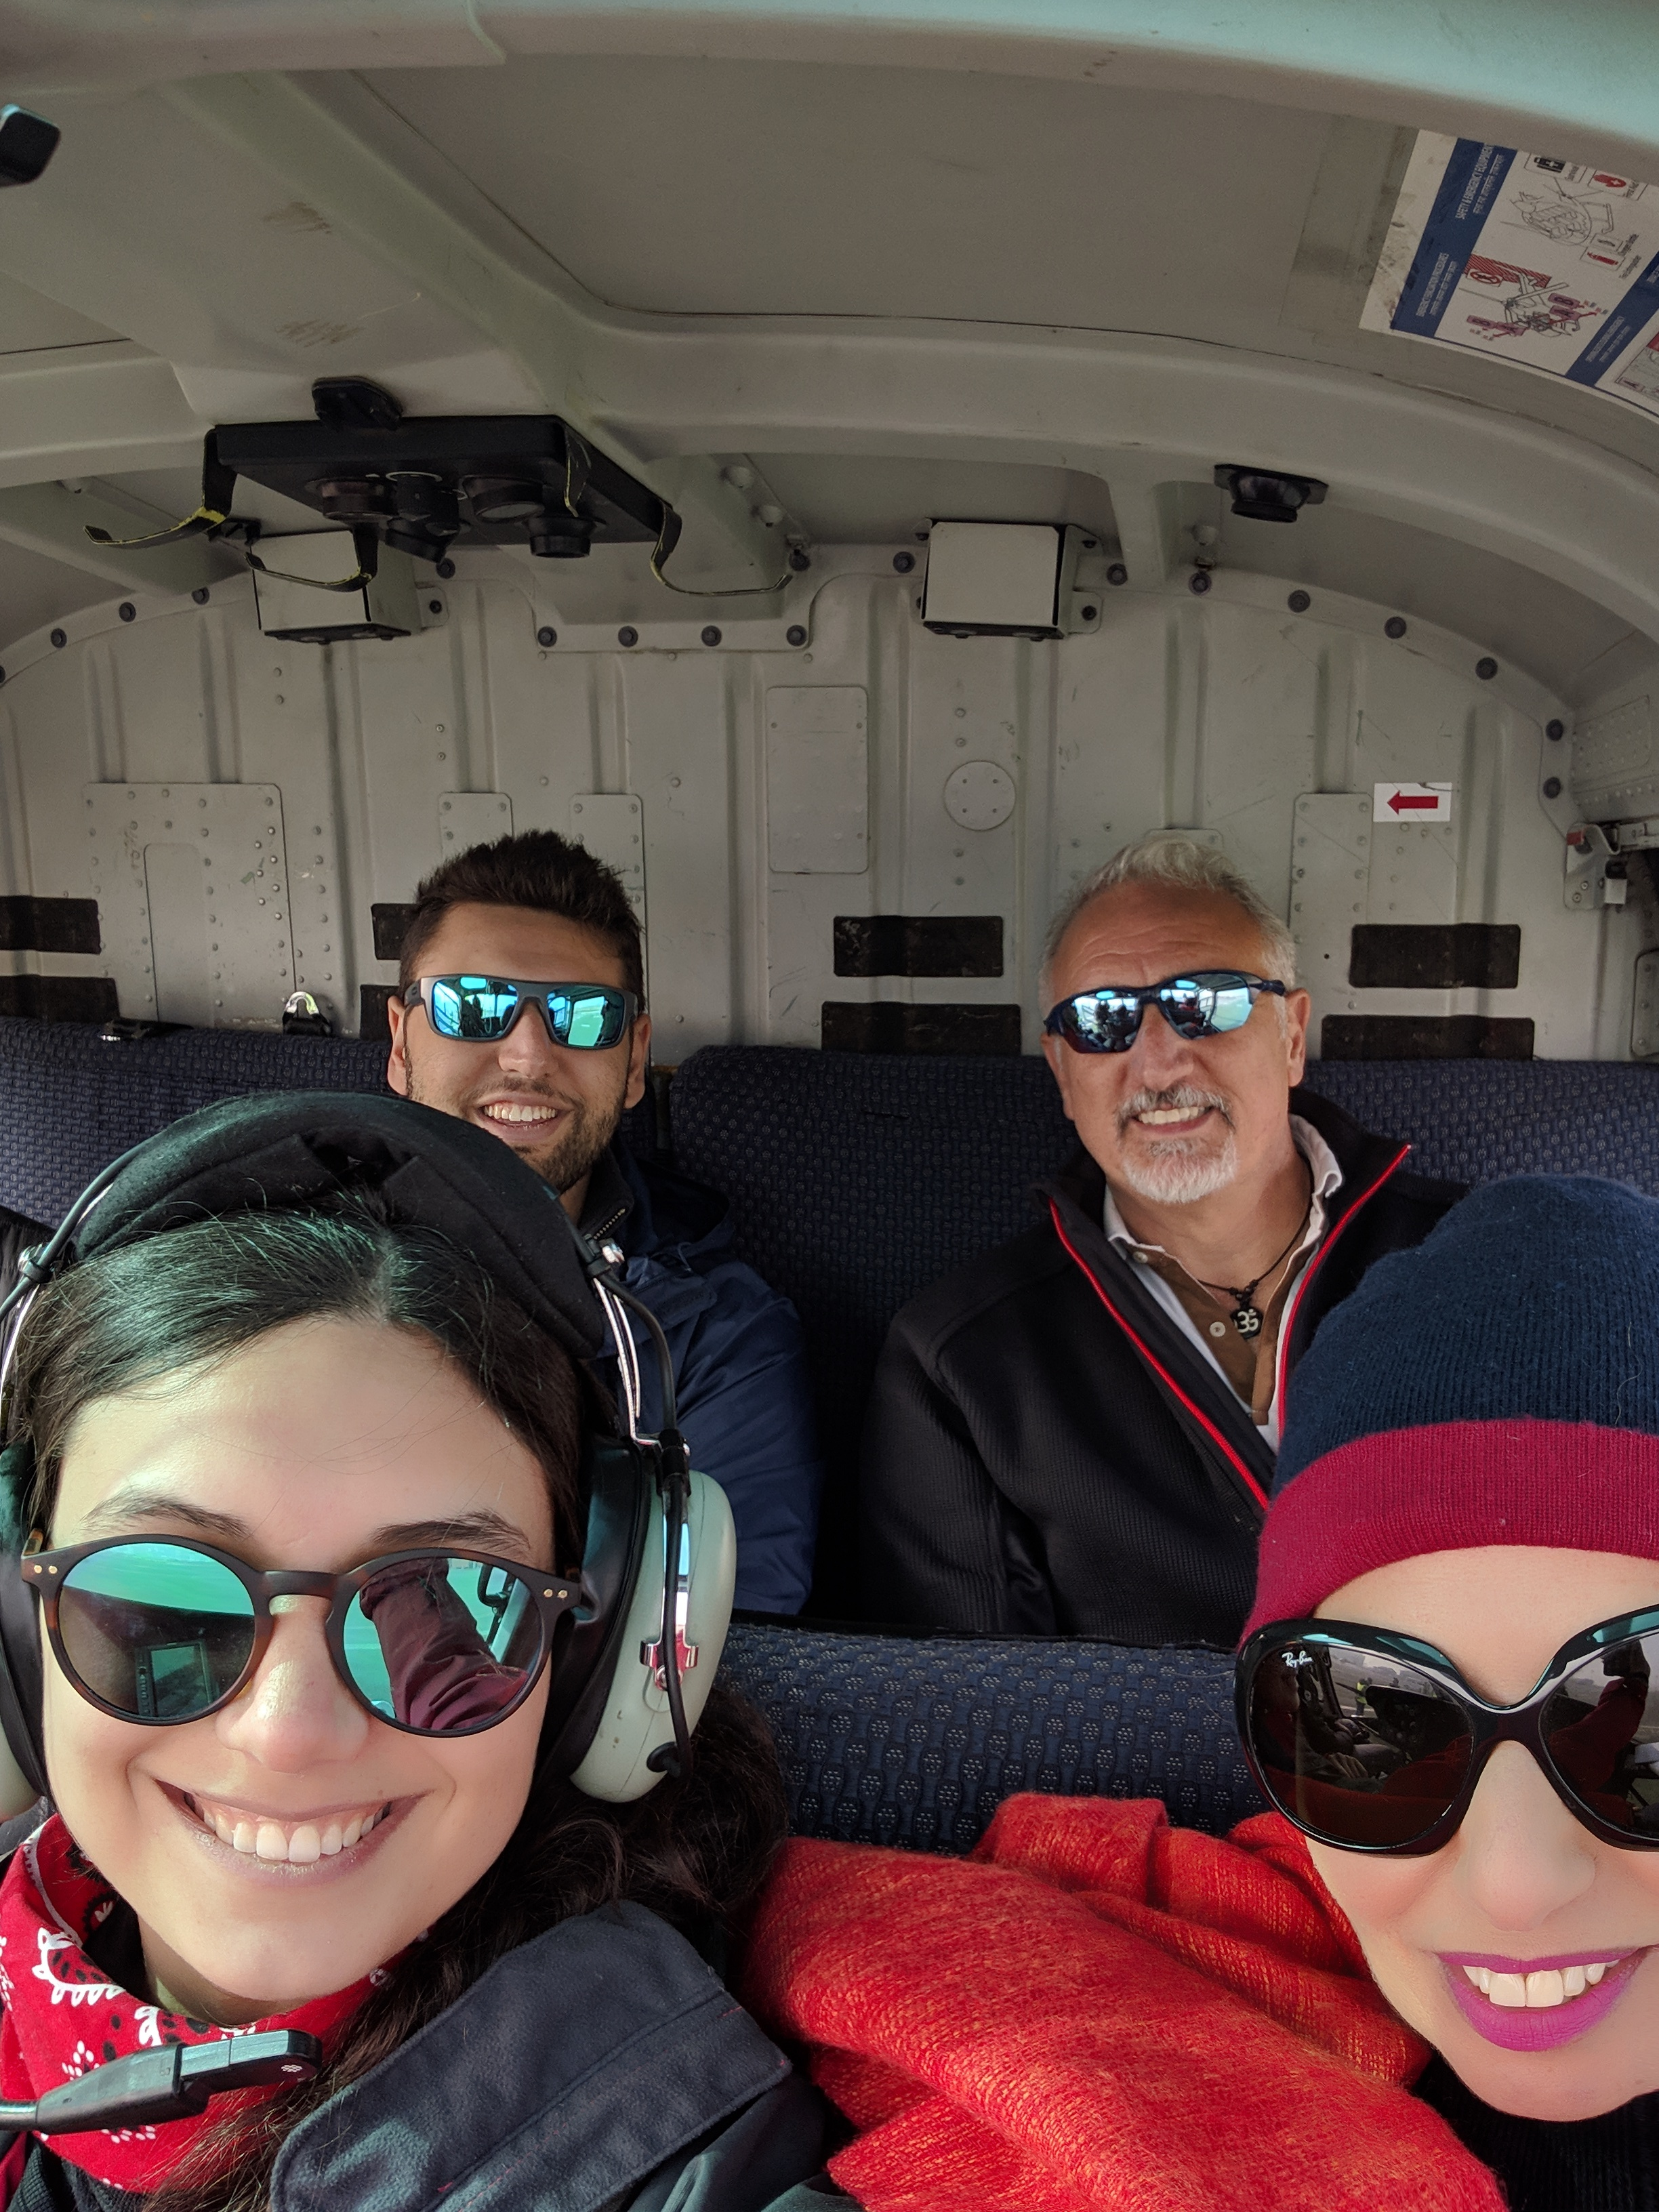 The four of us in the cabin of a helicopter on the way to Mt. Everest